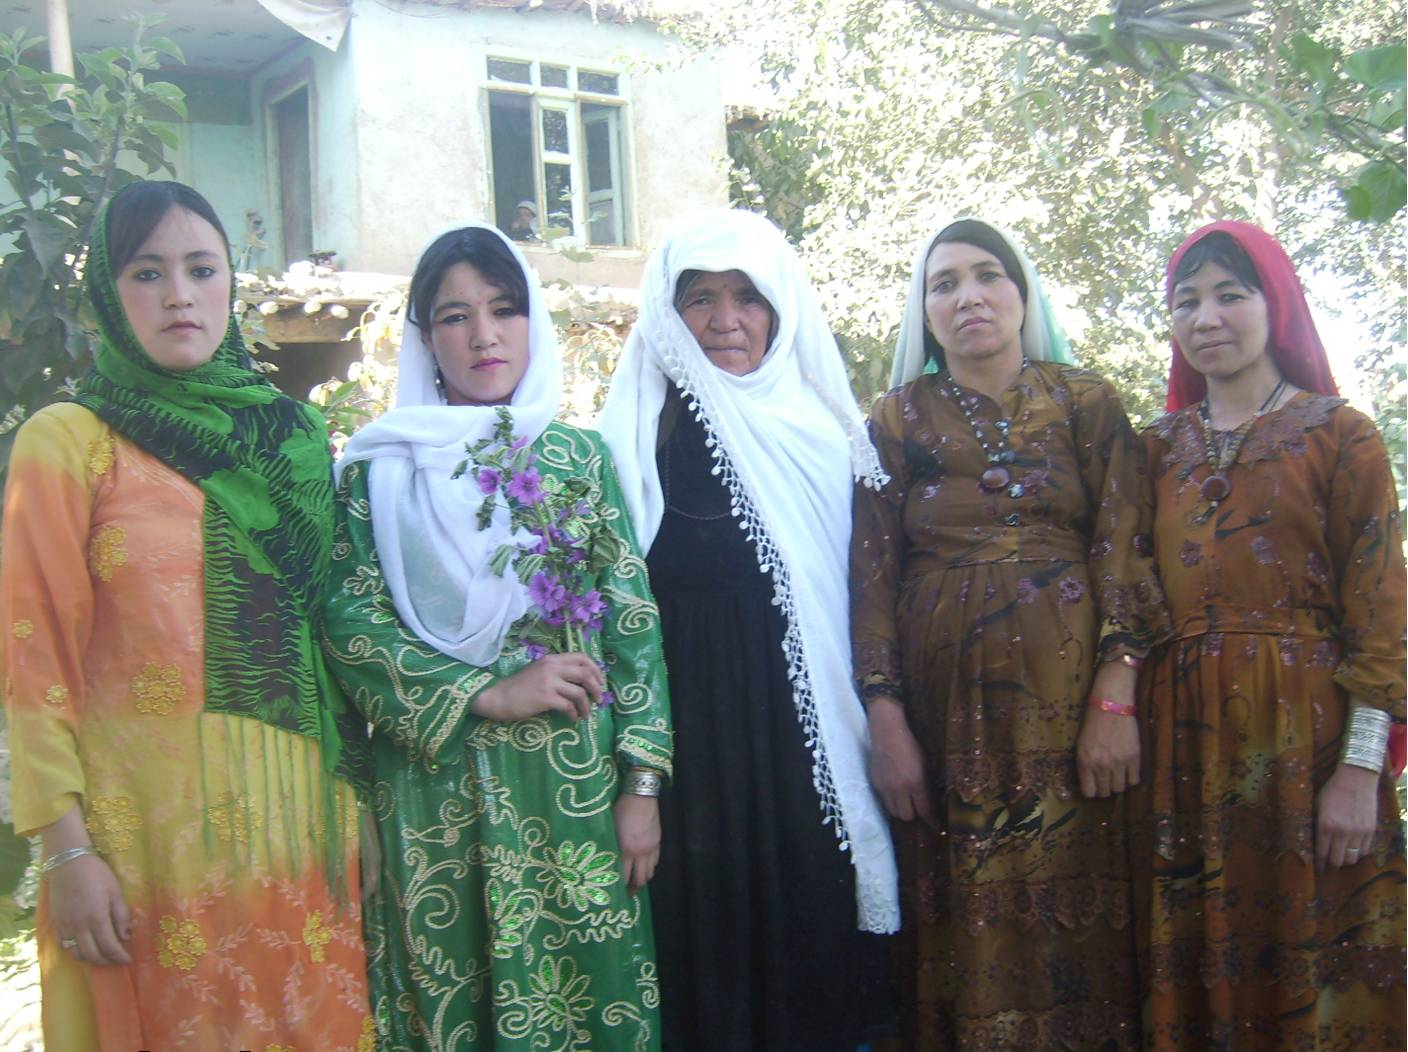 Thousands of women in Afghanistan have been abandoned by their husbands.